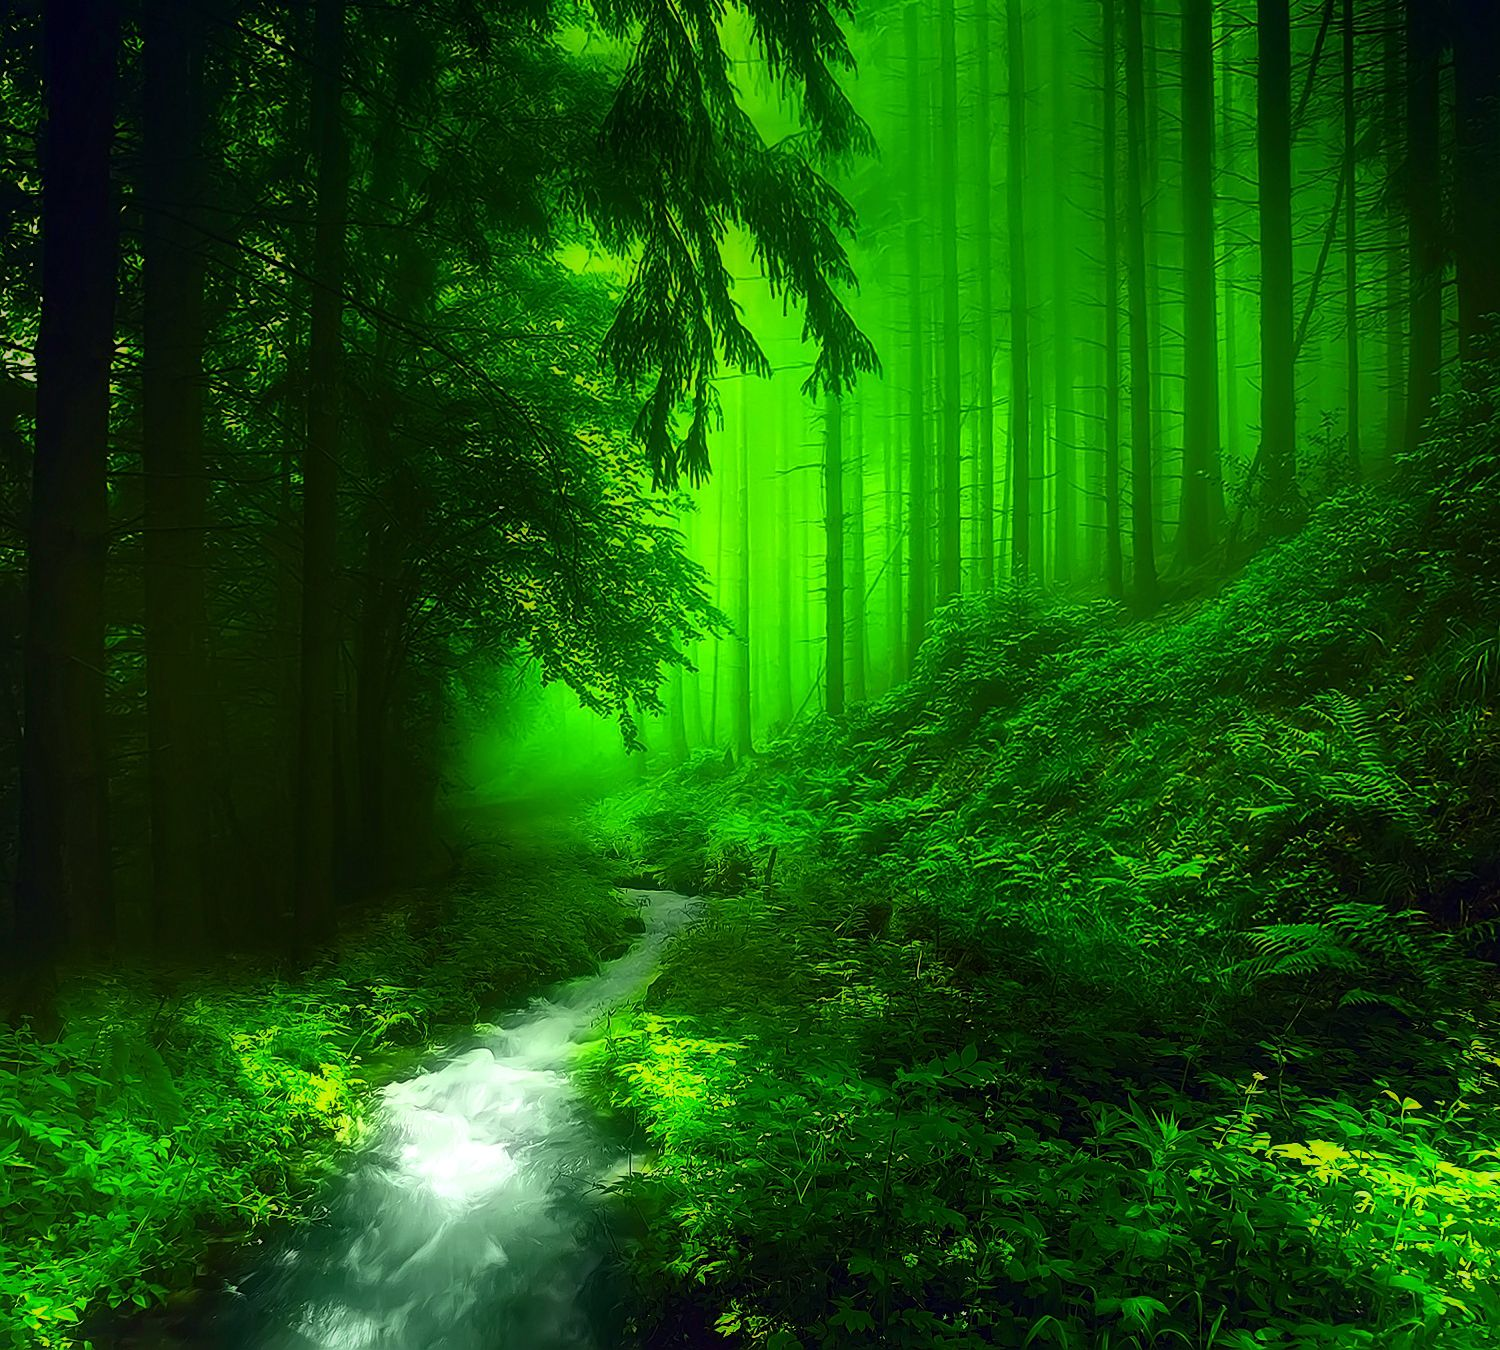 Green Forest Wallpaper HD Resolution #f07ai1oe